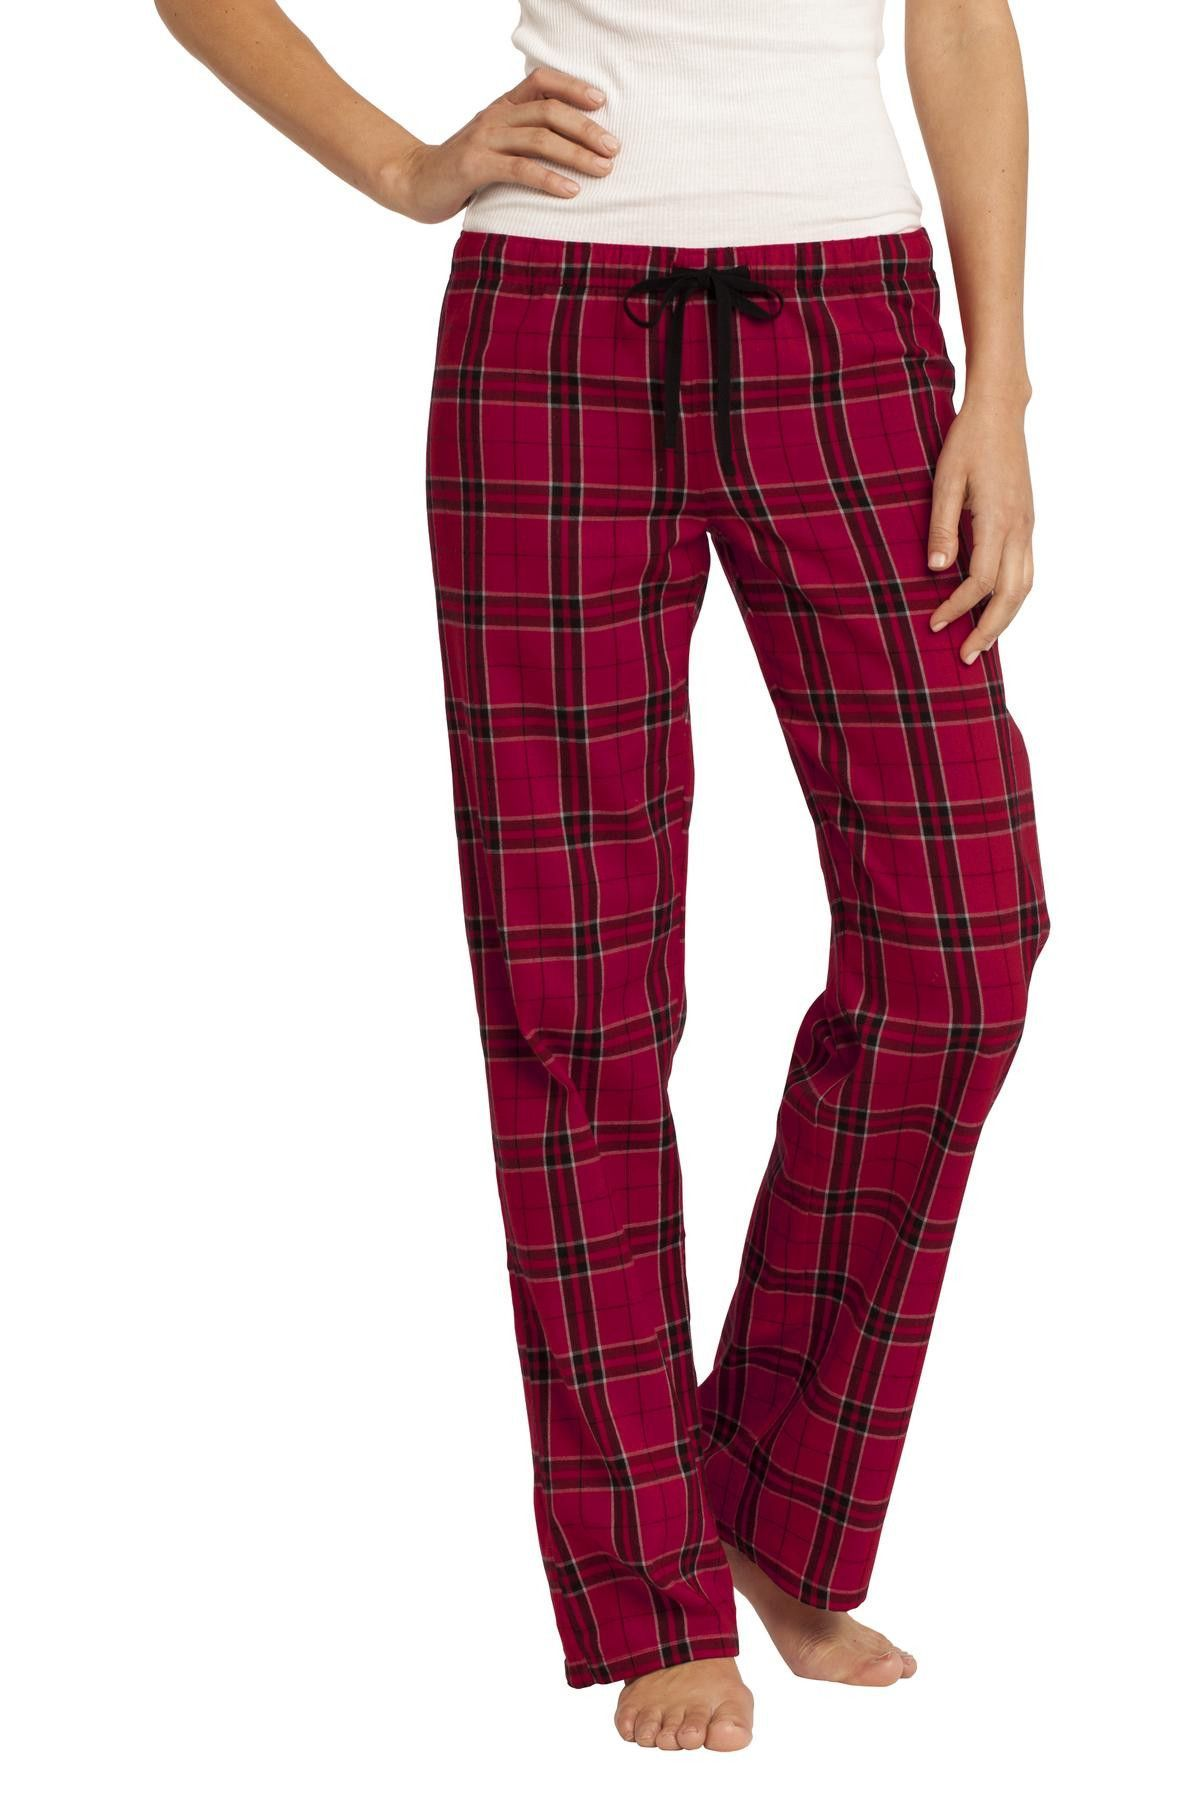 Red flannel around waist  District  Juniors Flannel Plaid Pant DT New Red  Plaid and